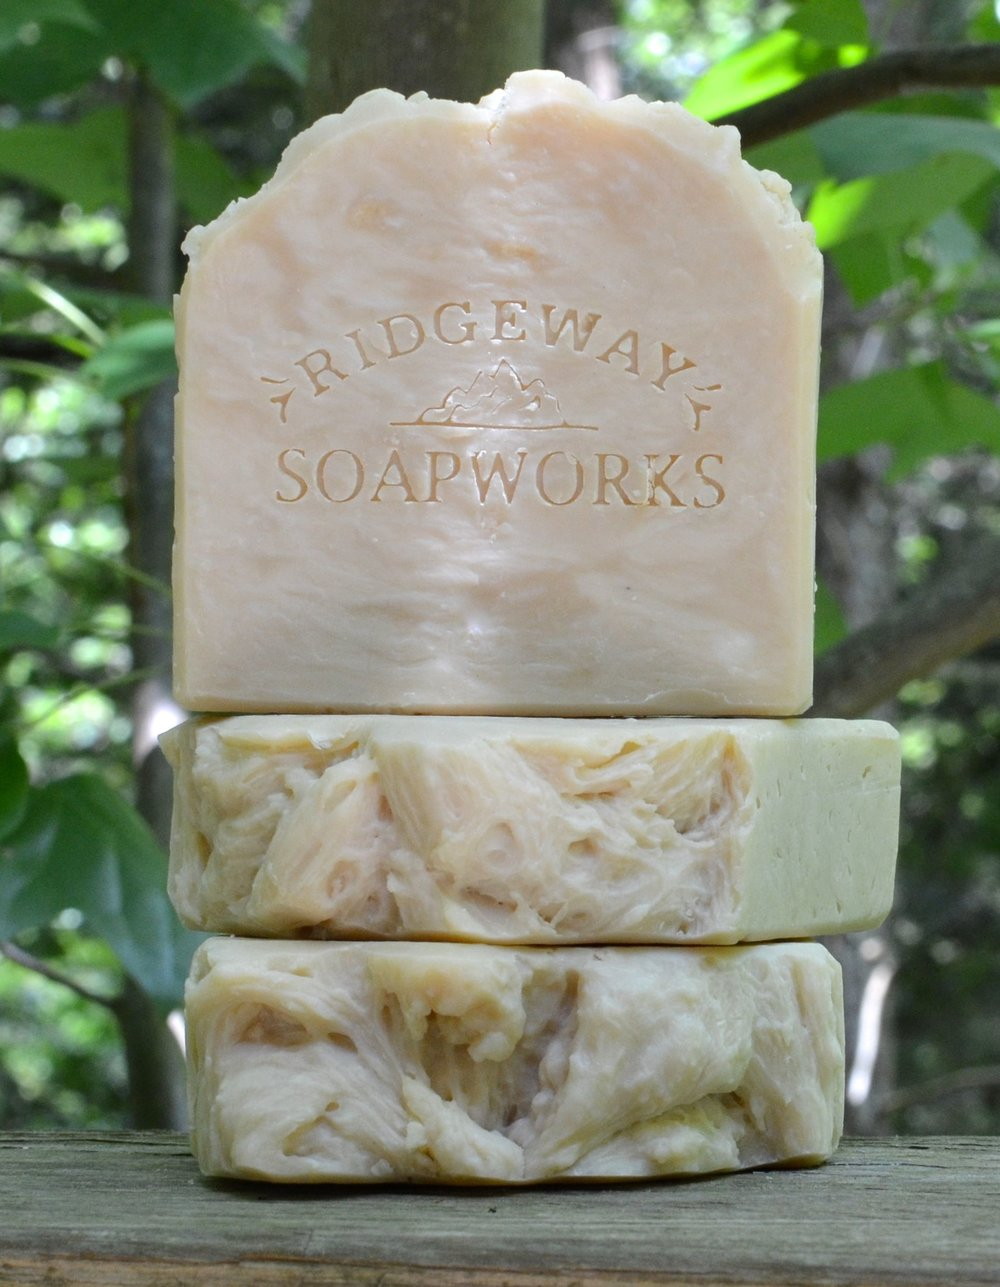 Rosemary Lemongrass Castile Soap